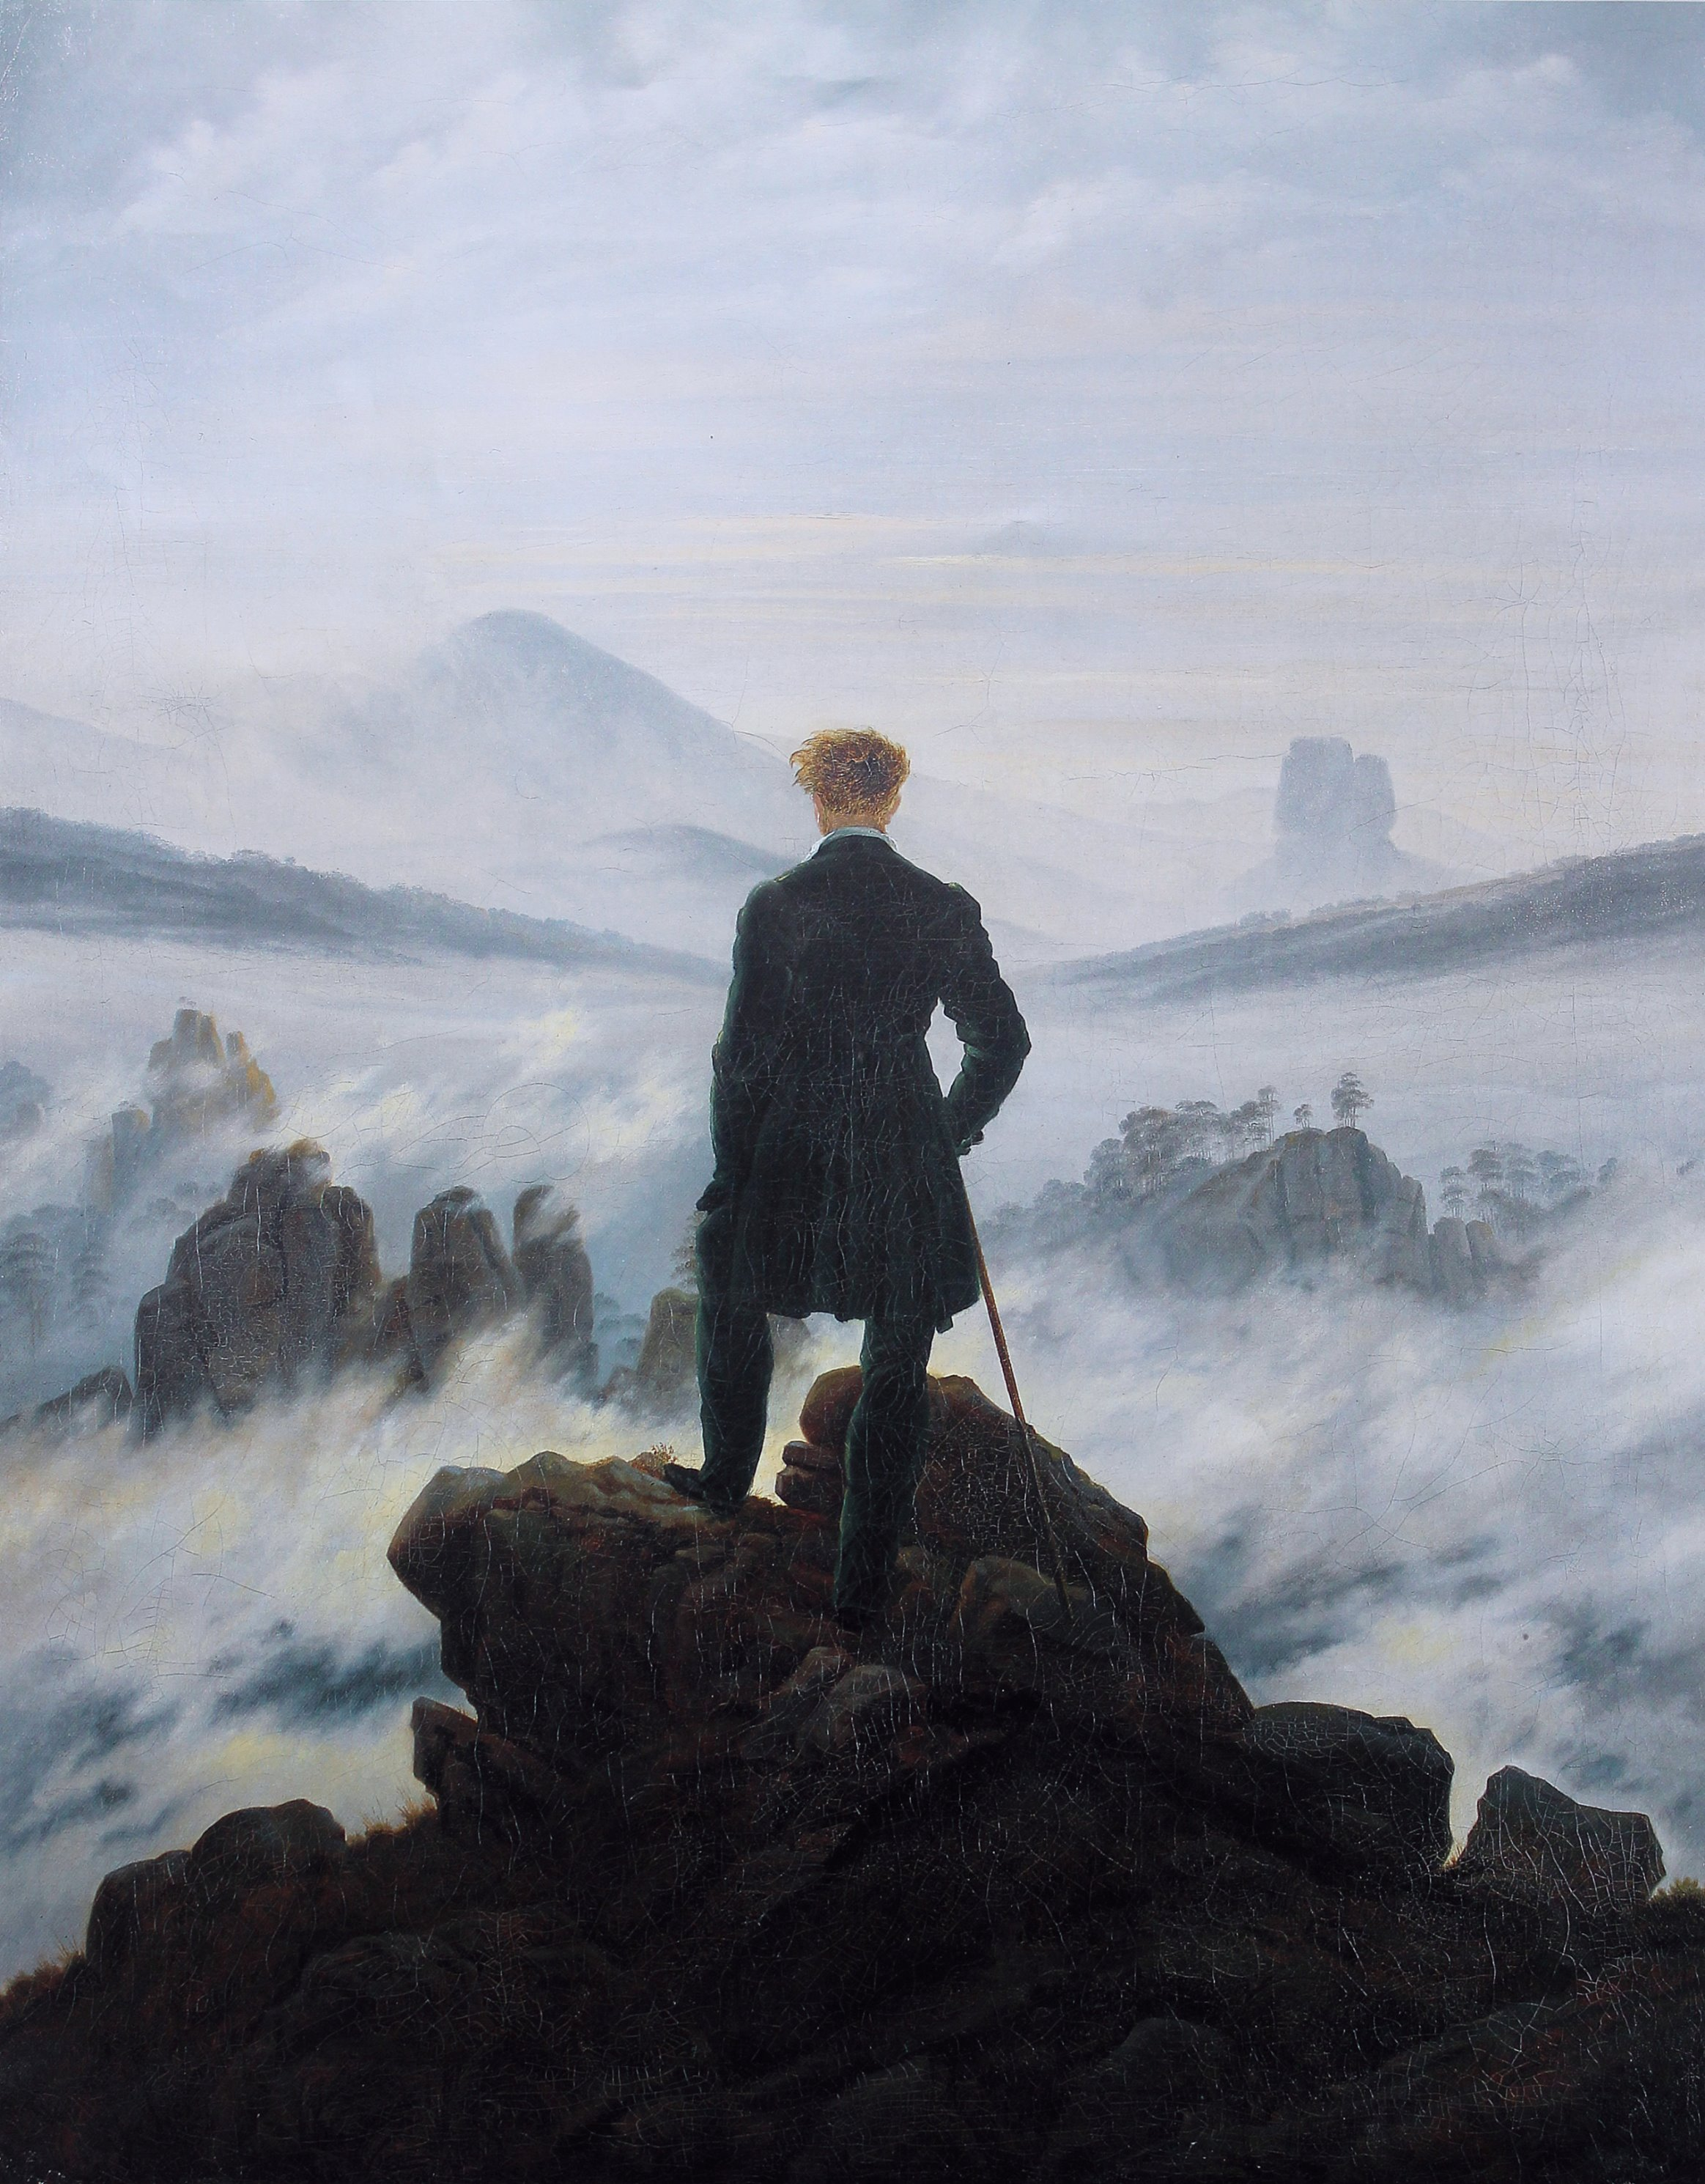 https://upload.wikimedia.org/wikipedia/commons/b/b9/Caspar_David_Friedrich_-_Wanderer_above_the_sea_of_fog.jpg